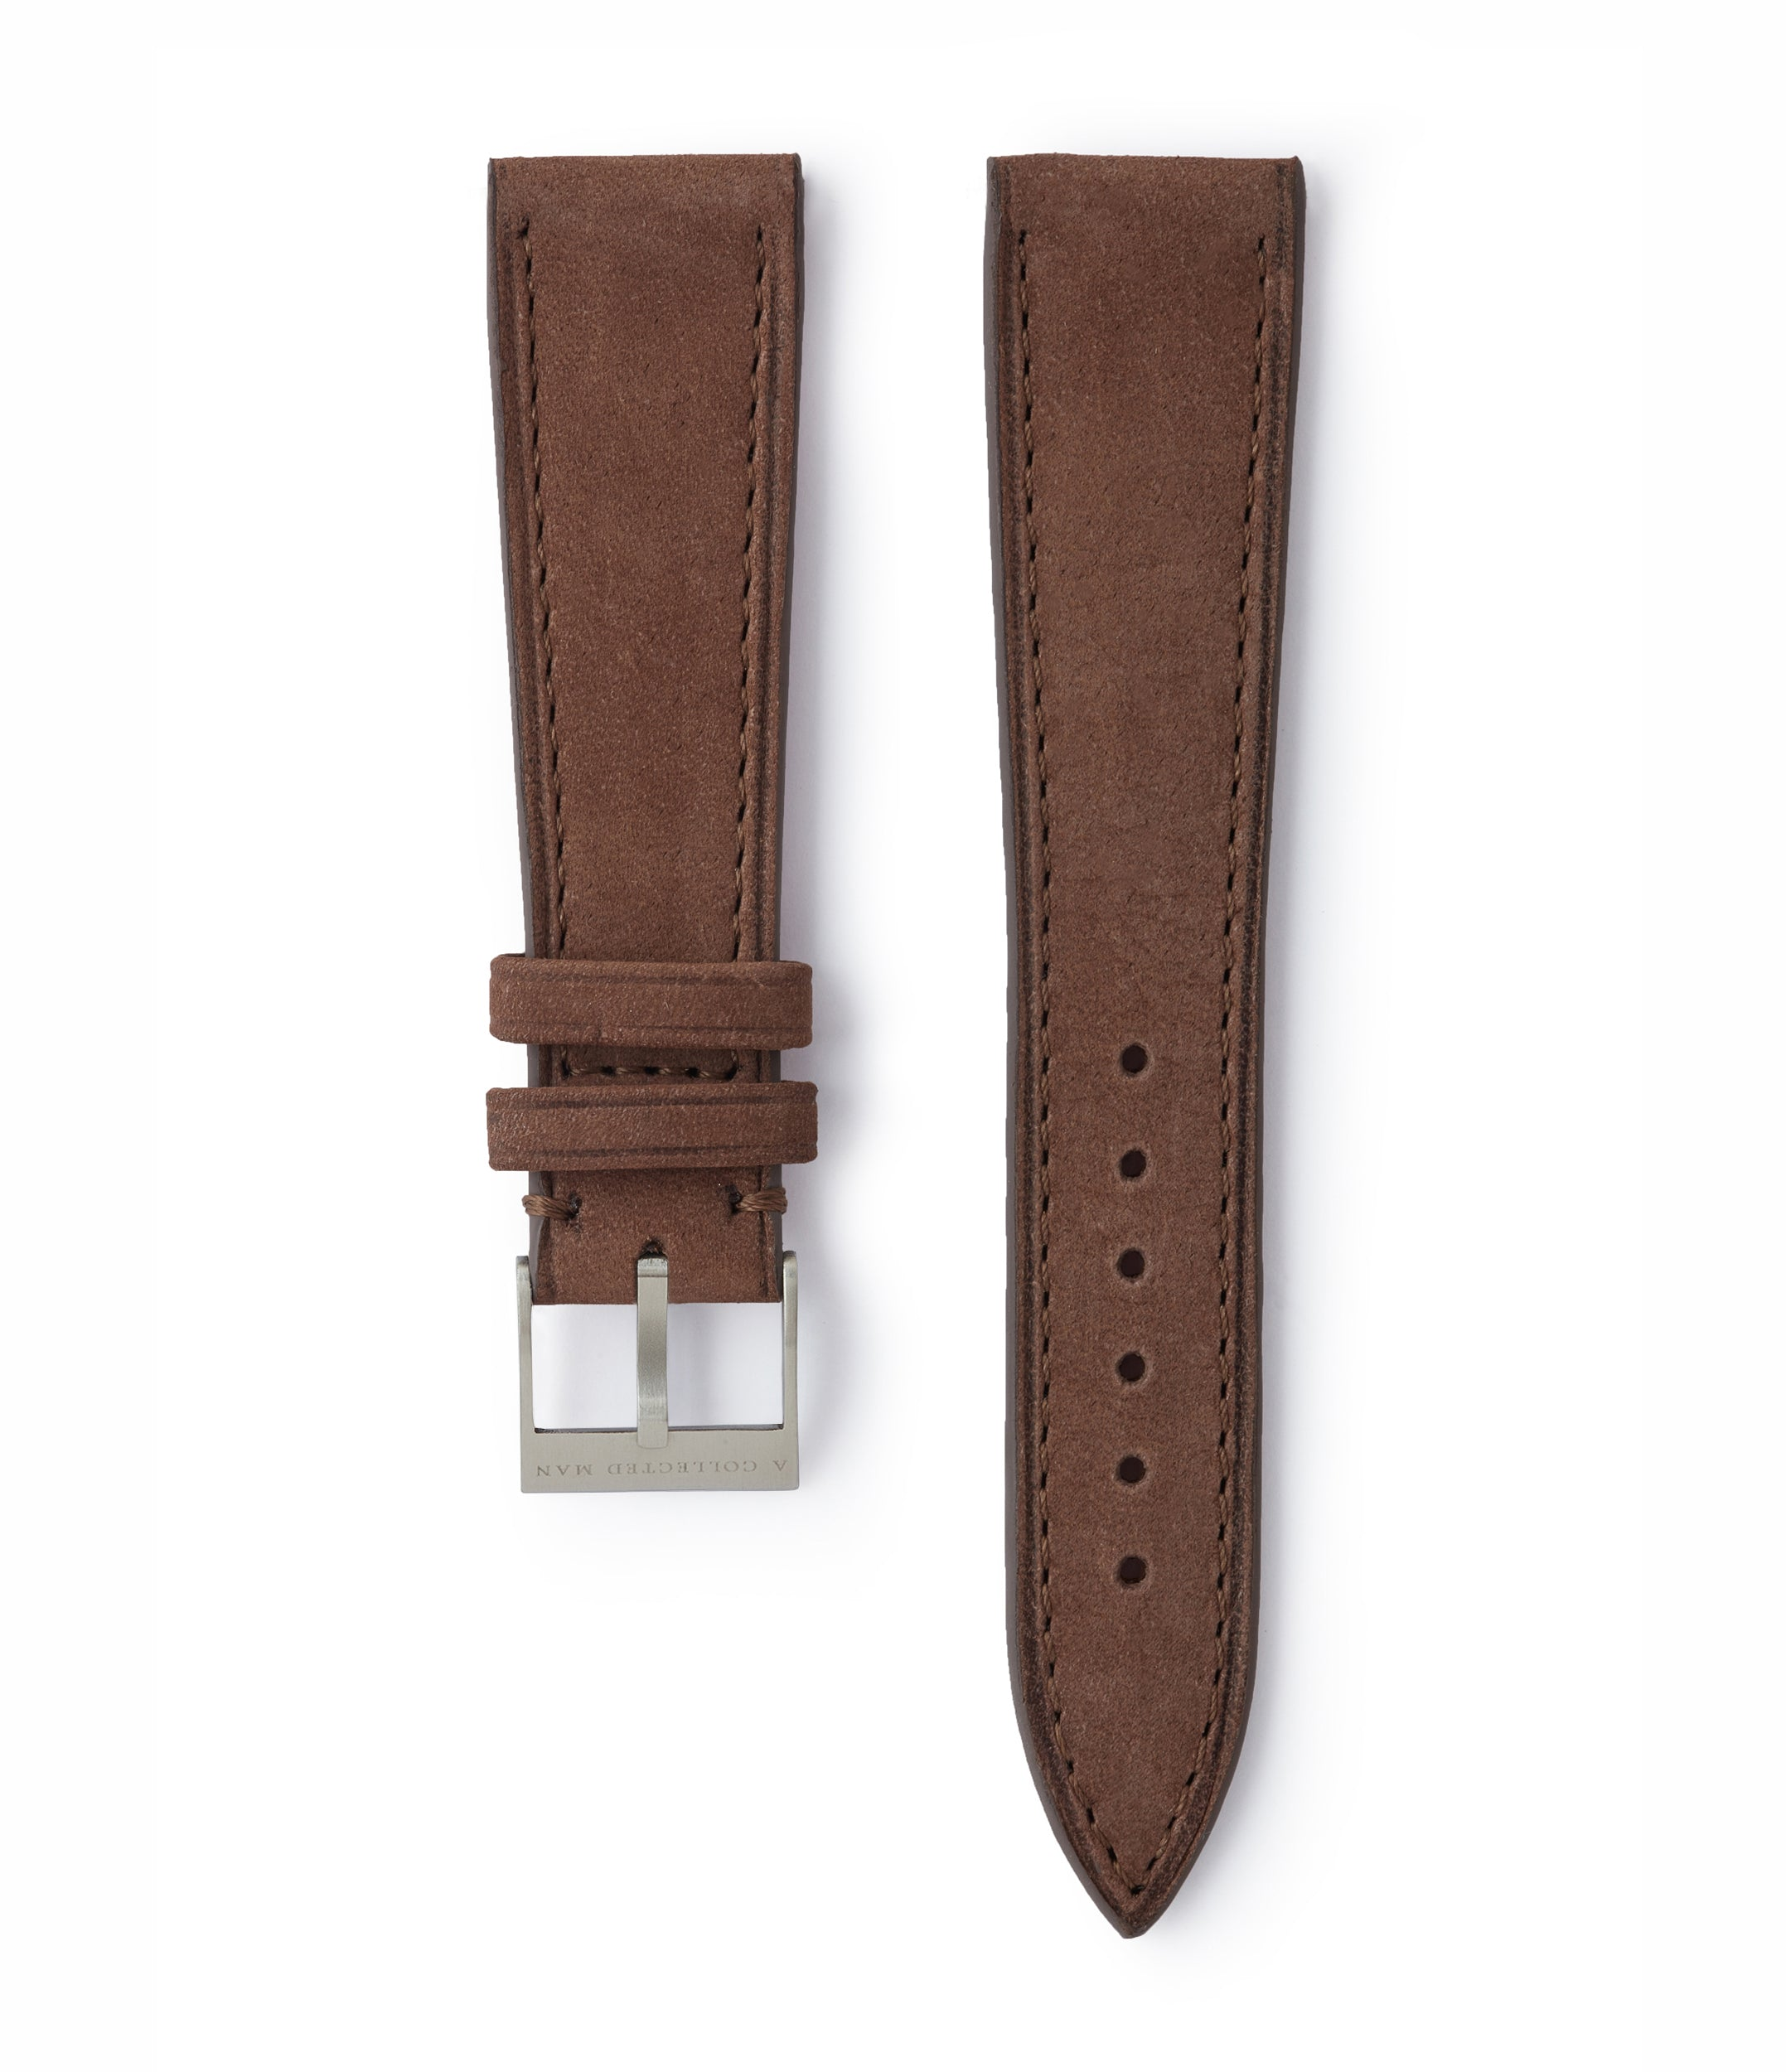 buy smoke grey nubuck leather watch strap Geneva Molequin for sale order online at A Collected Man London